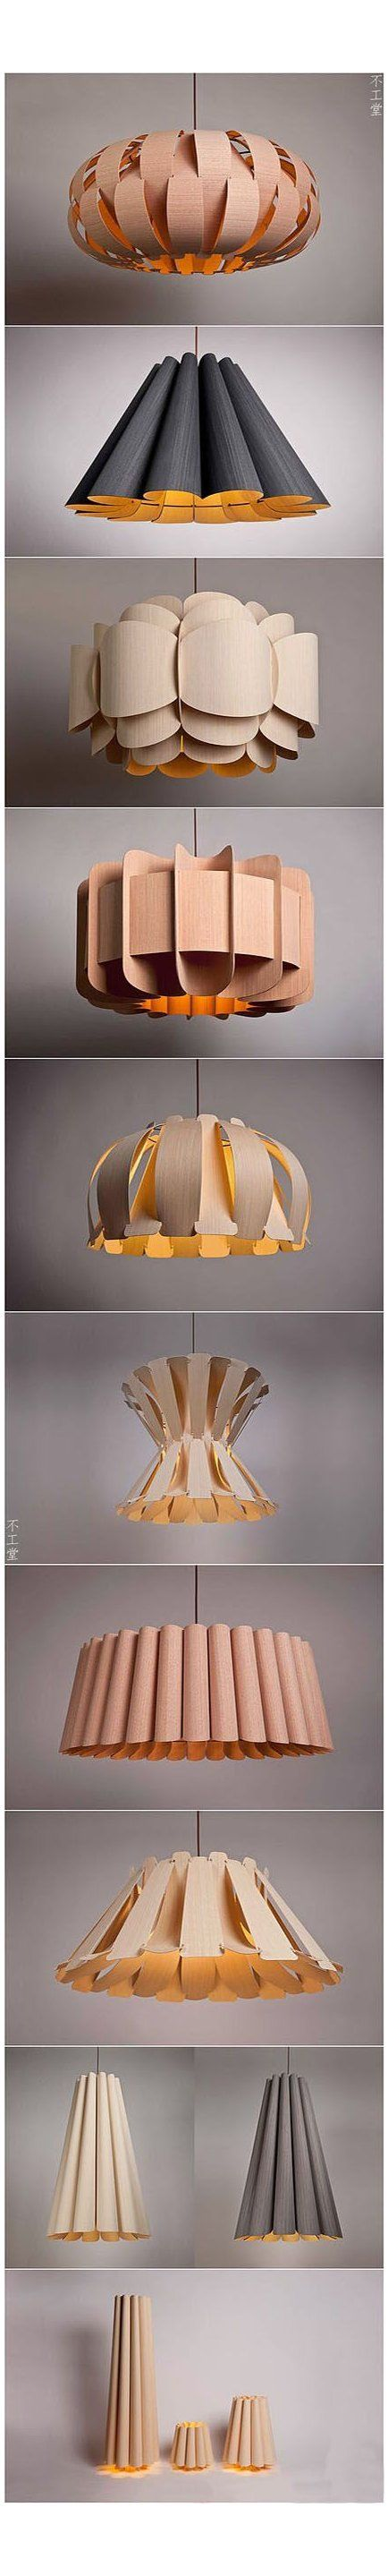 Cool Light Ideas Best Diy Ideas Paper Lamp Design Diy Paperlampdesigndiy Cool Light Ideas Diy Crafts Tutorials In 2020